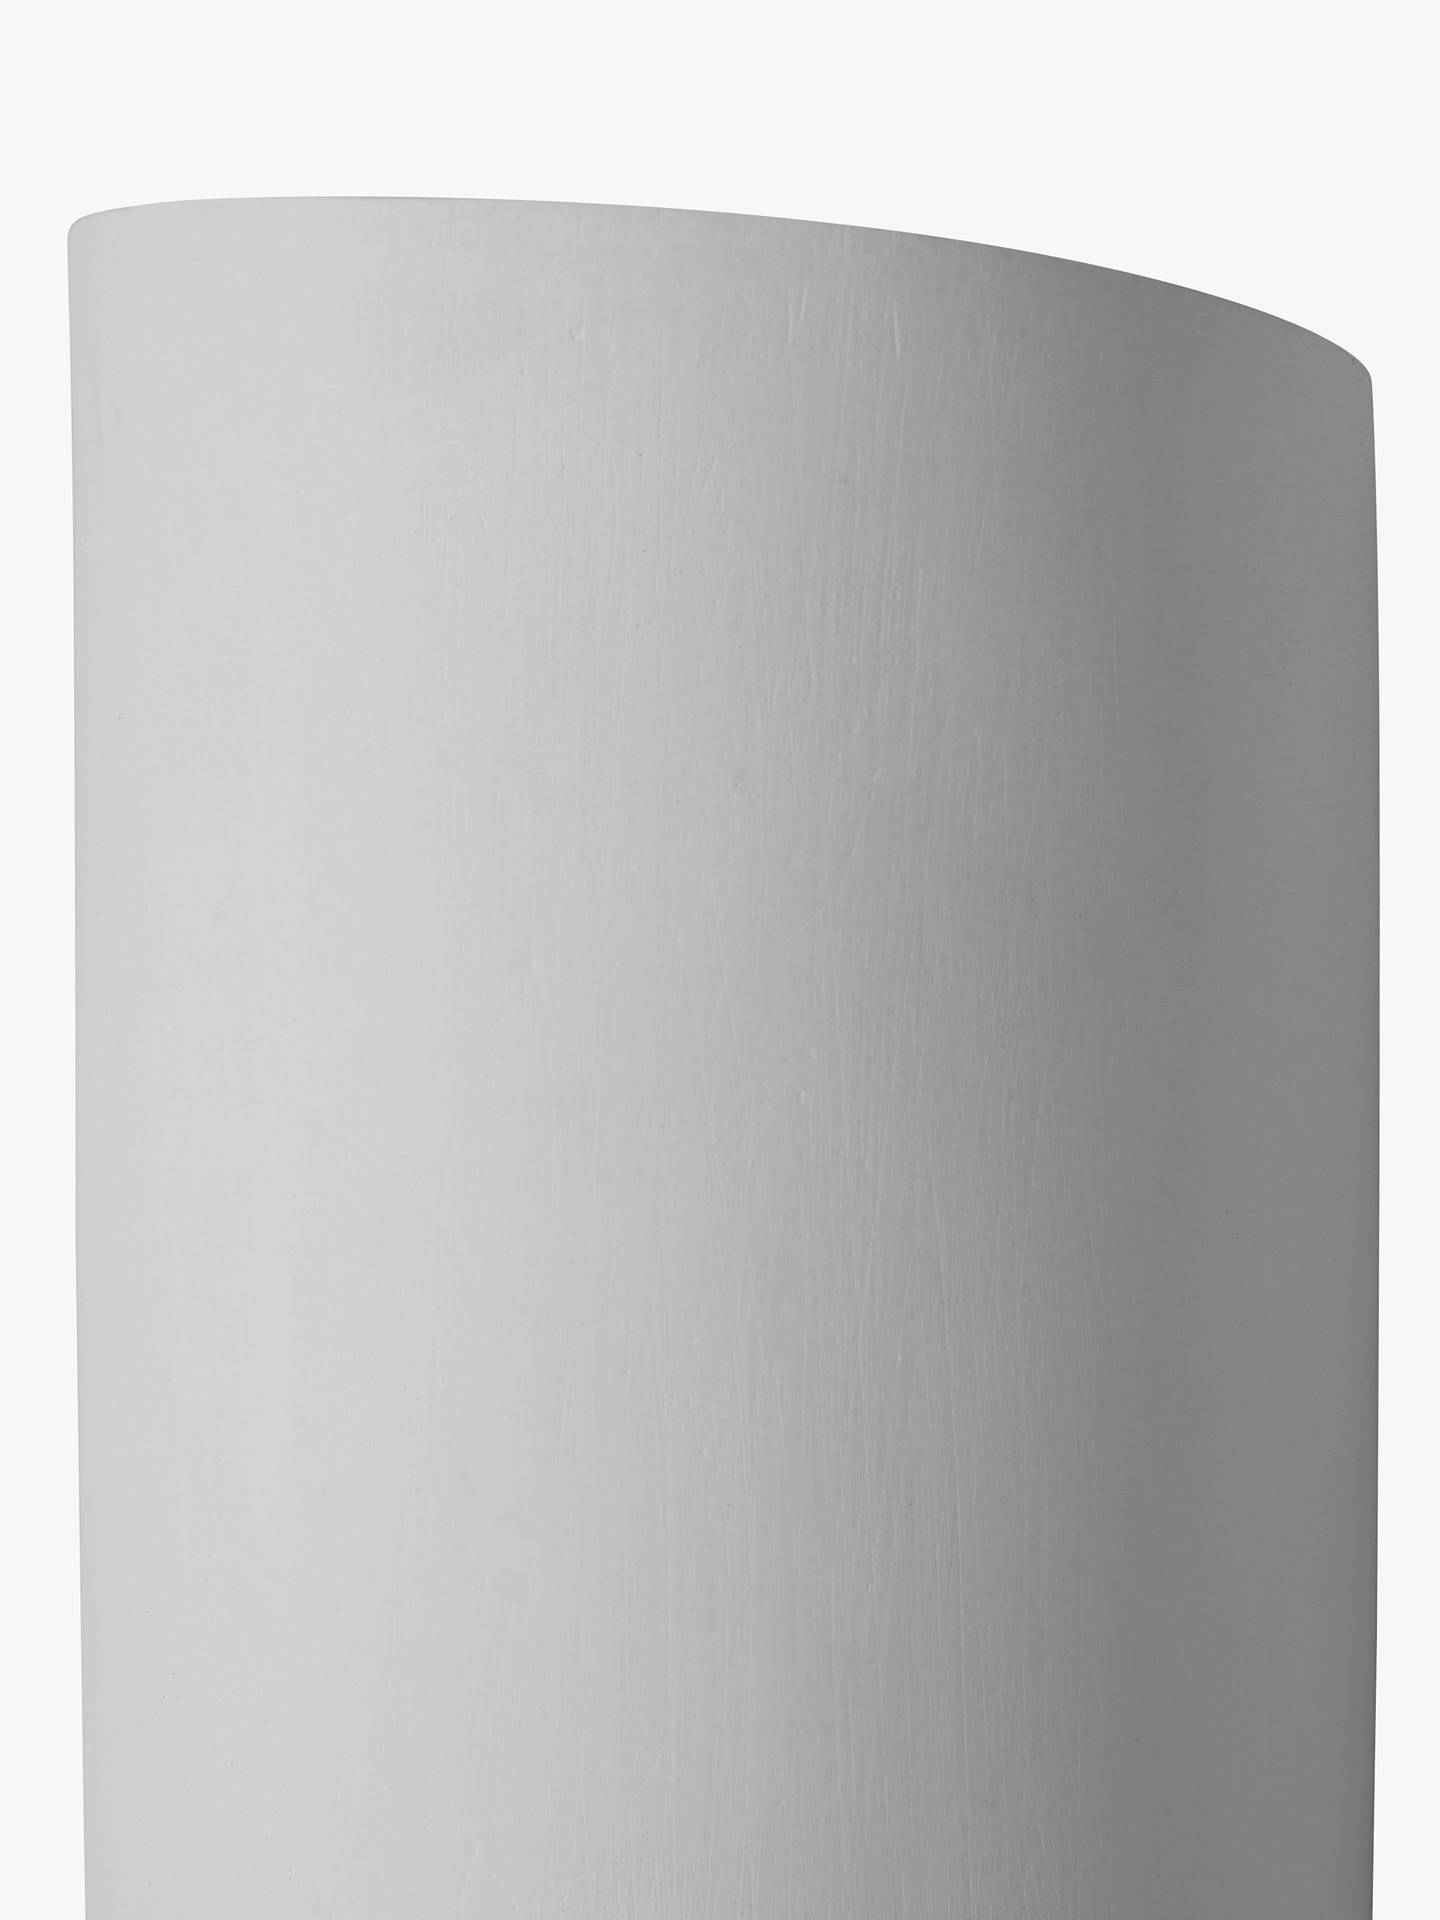 BuyJohn Lewis & Partners Picton LED Cone Wall Light, White Online at johnlewis.com